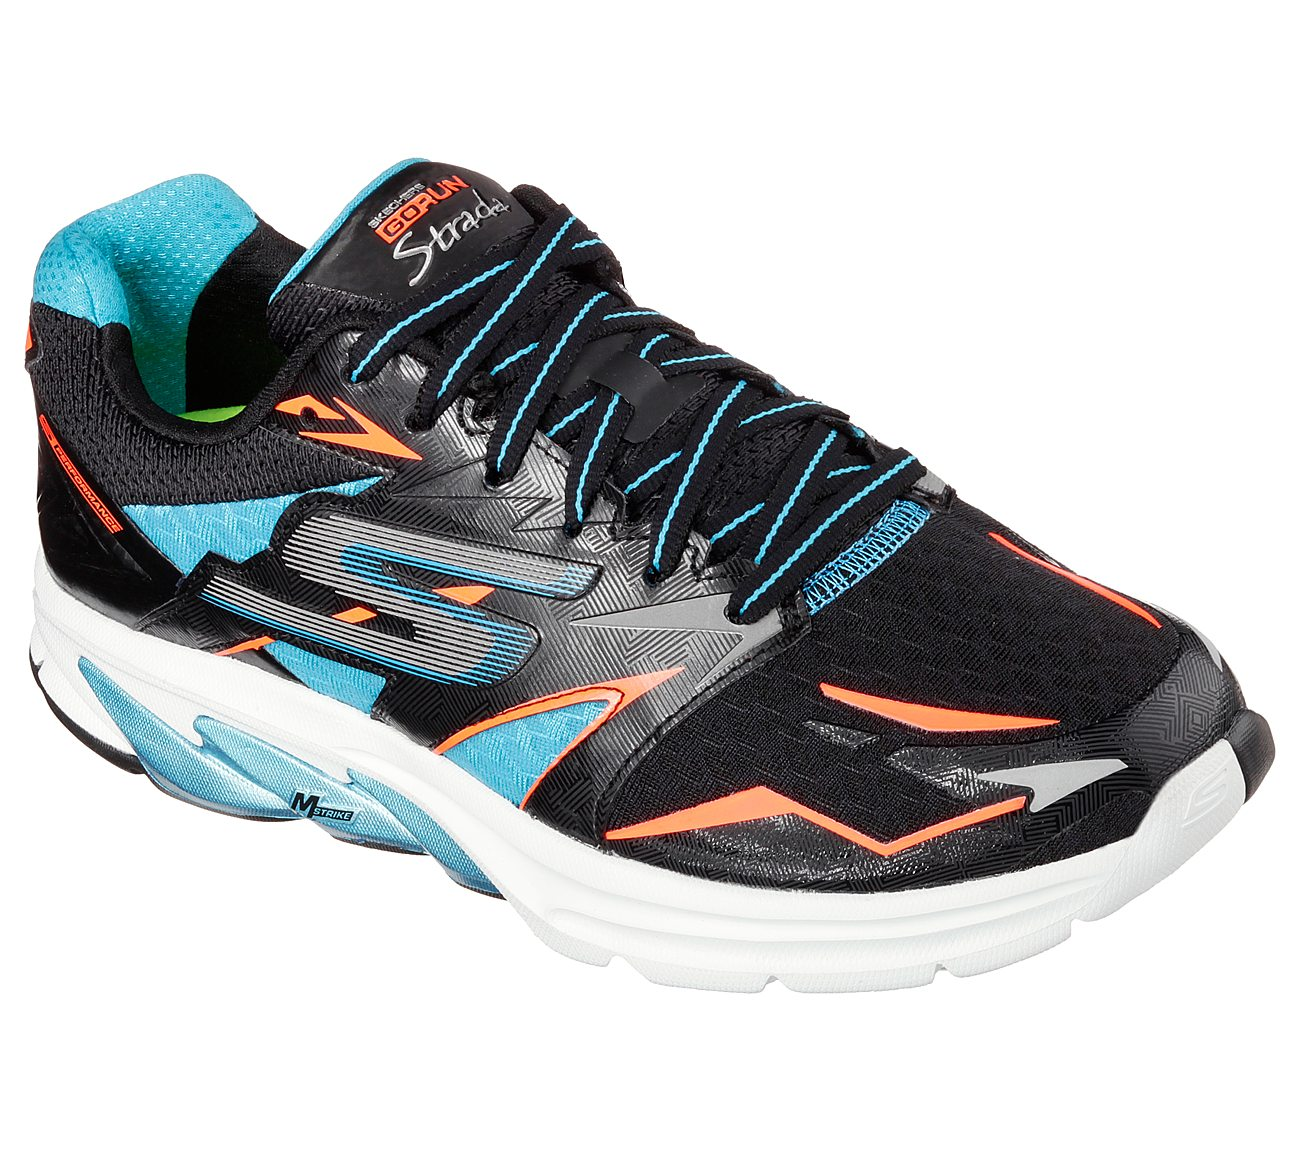 58327c91ee03 Buy SKECHERS Skechers GOrun Strada Skechers Performance Shoes only ...